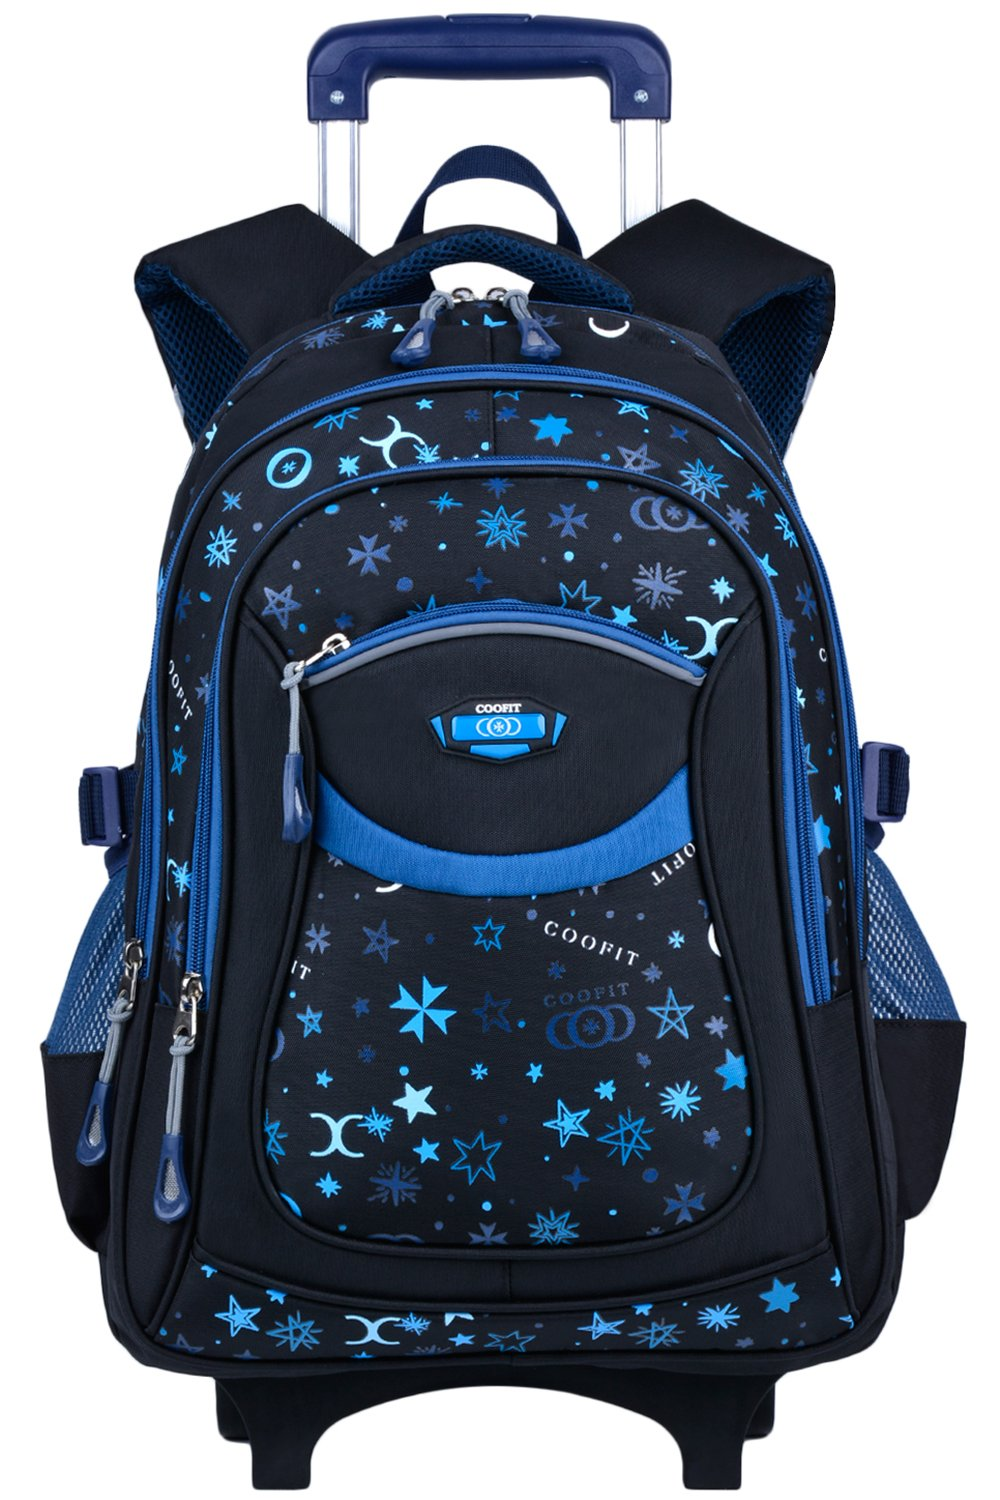 Rolling Backpack, COOFIT Wheeled Backpack School Roller Backpack Rolling Backpack With Wheels kids luggage (Coofit Originally Design Blue) by COOFIT